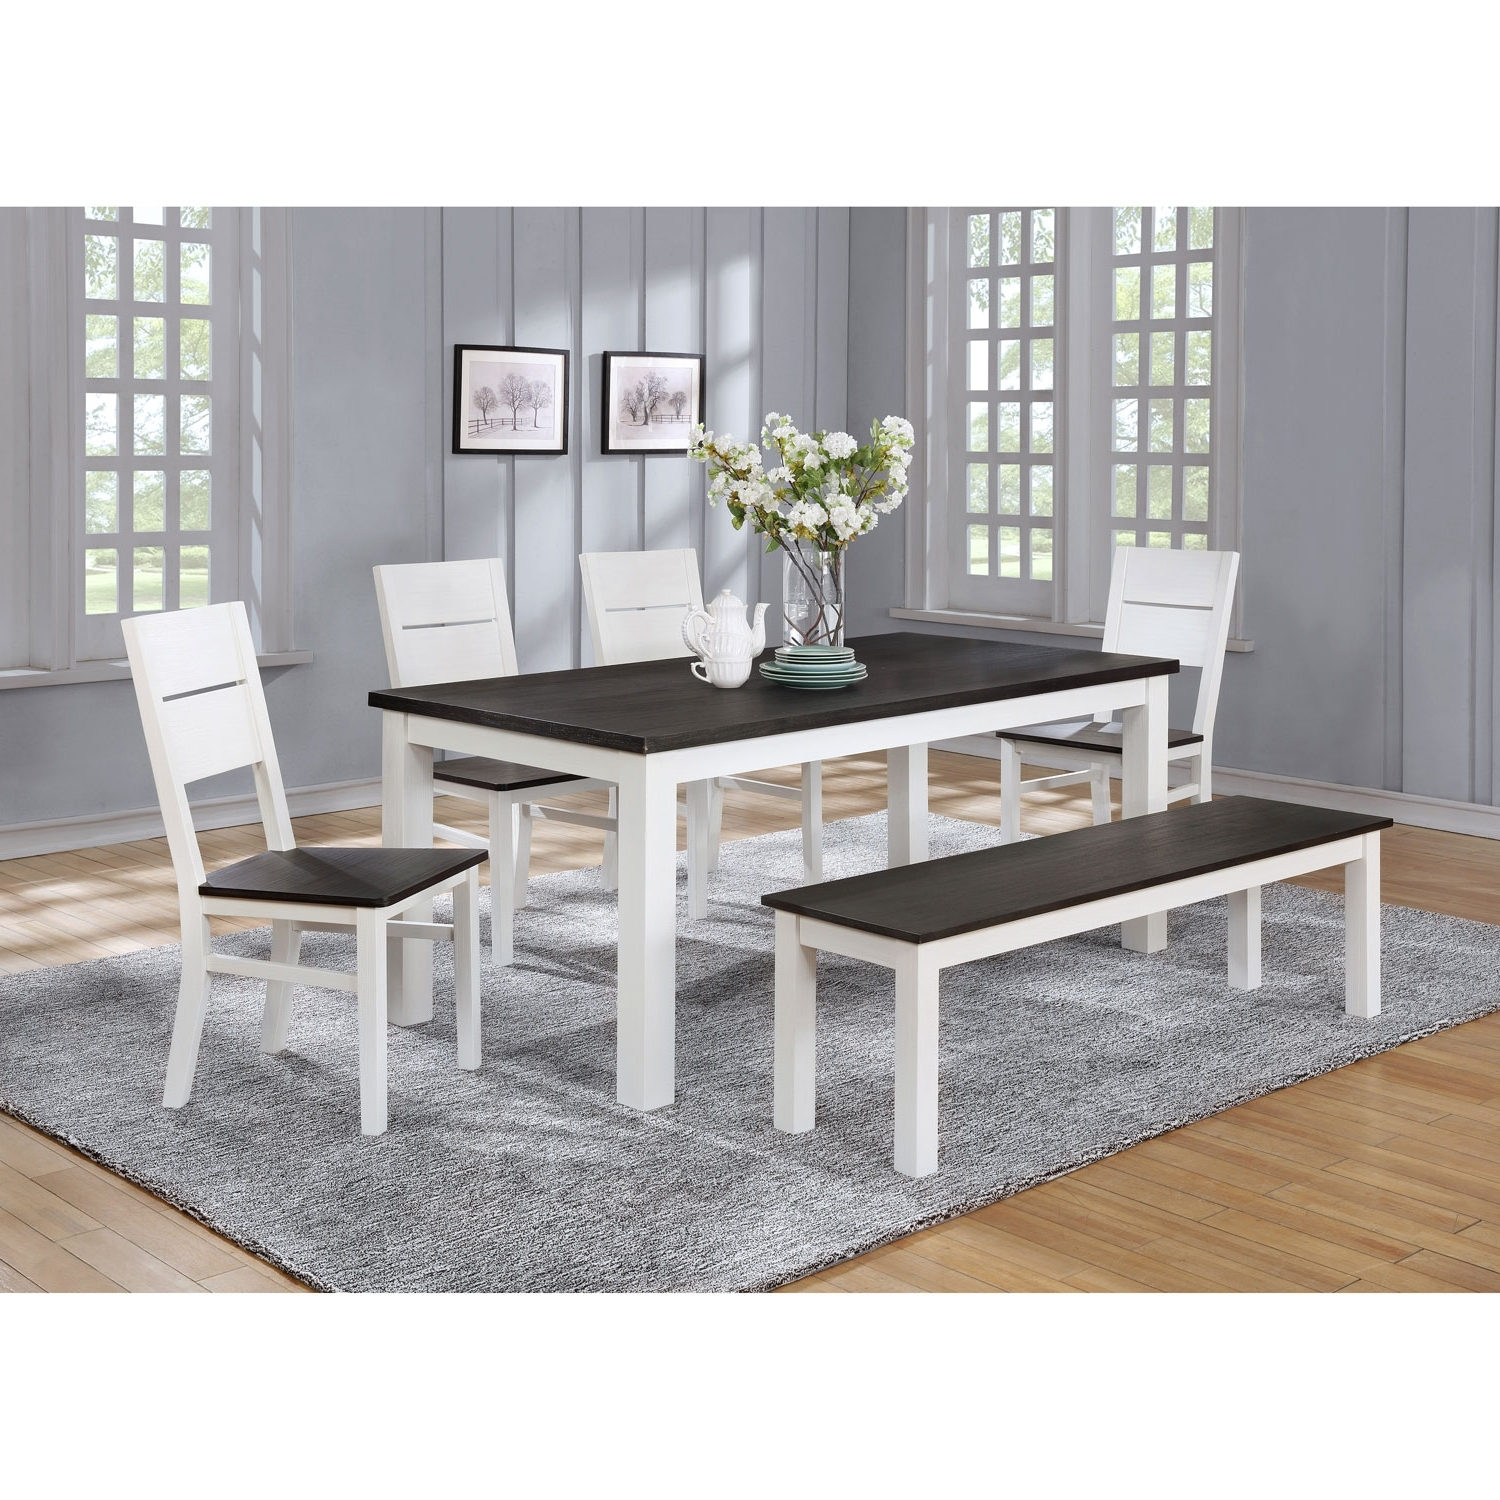 Best And Newest Laurent 7 Piece Rectangle Dining Sets With Wood And Host Chairs With Lauren Traditional 6 Seating Rectangular Casual Dining Table – White (View 4 of 25)